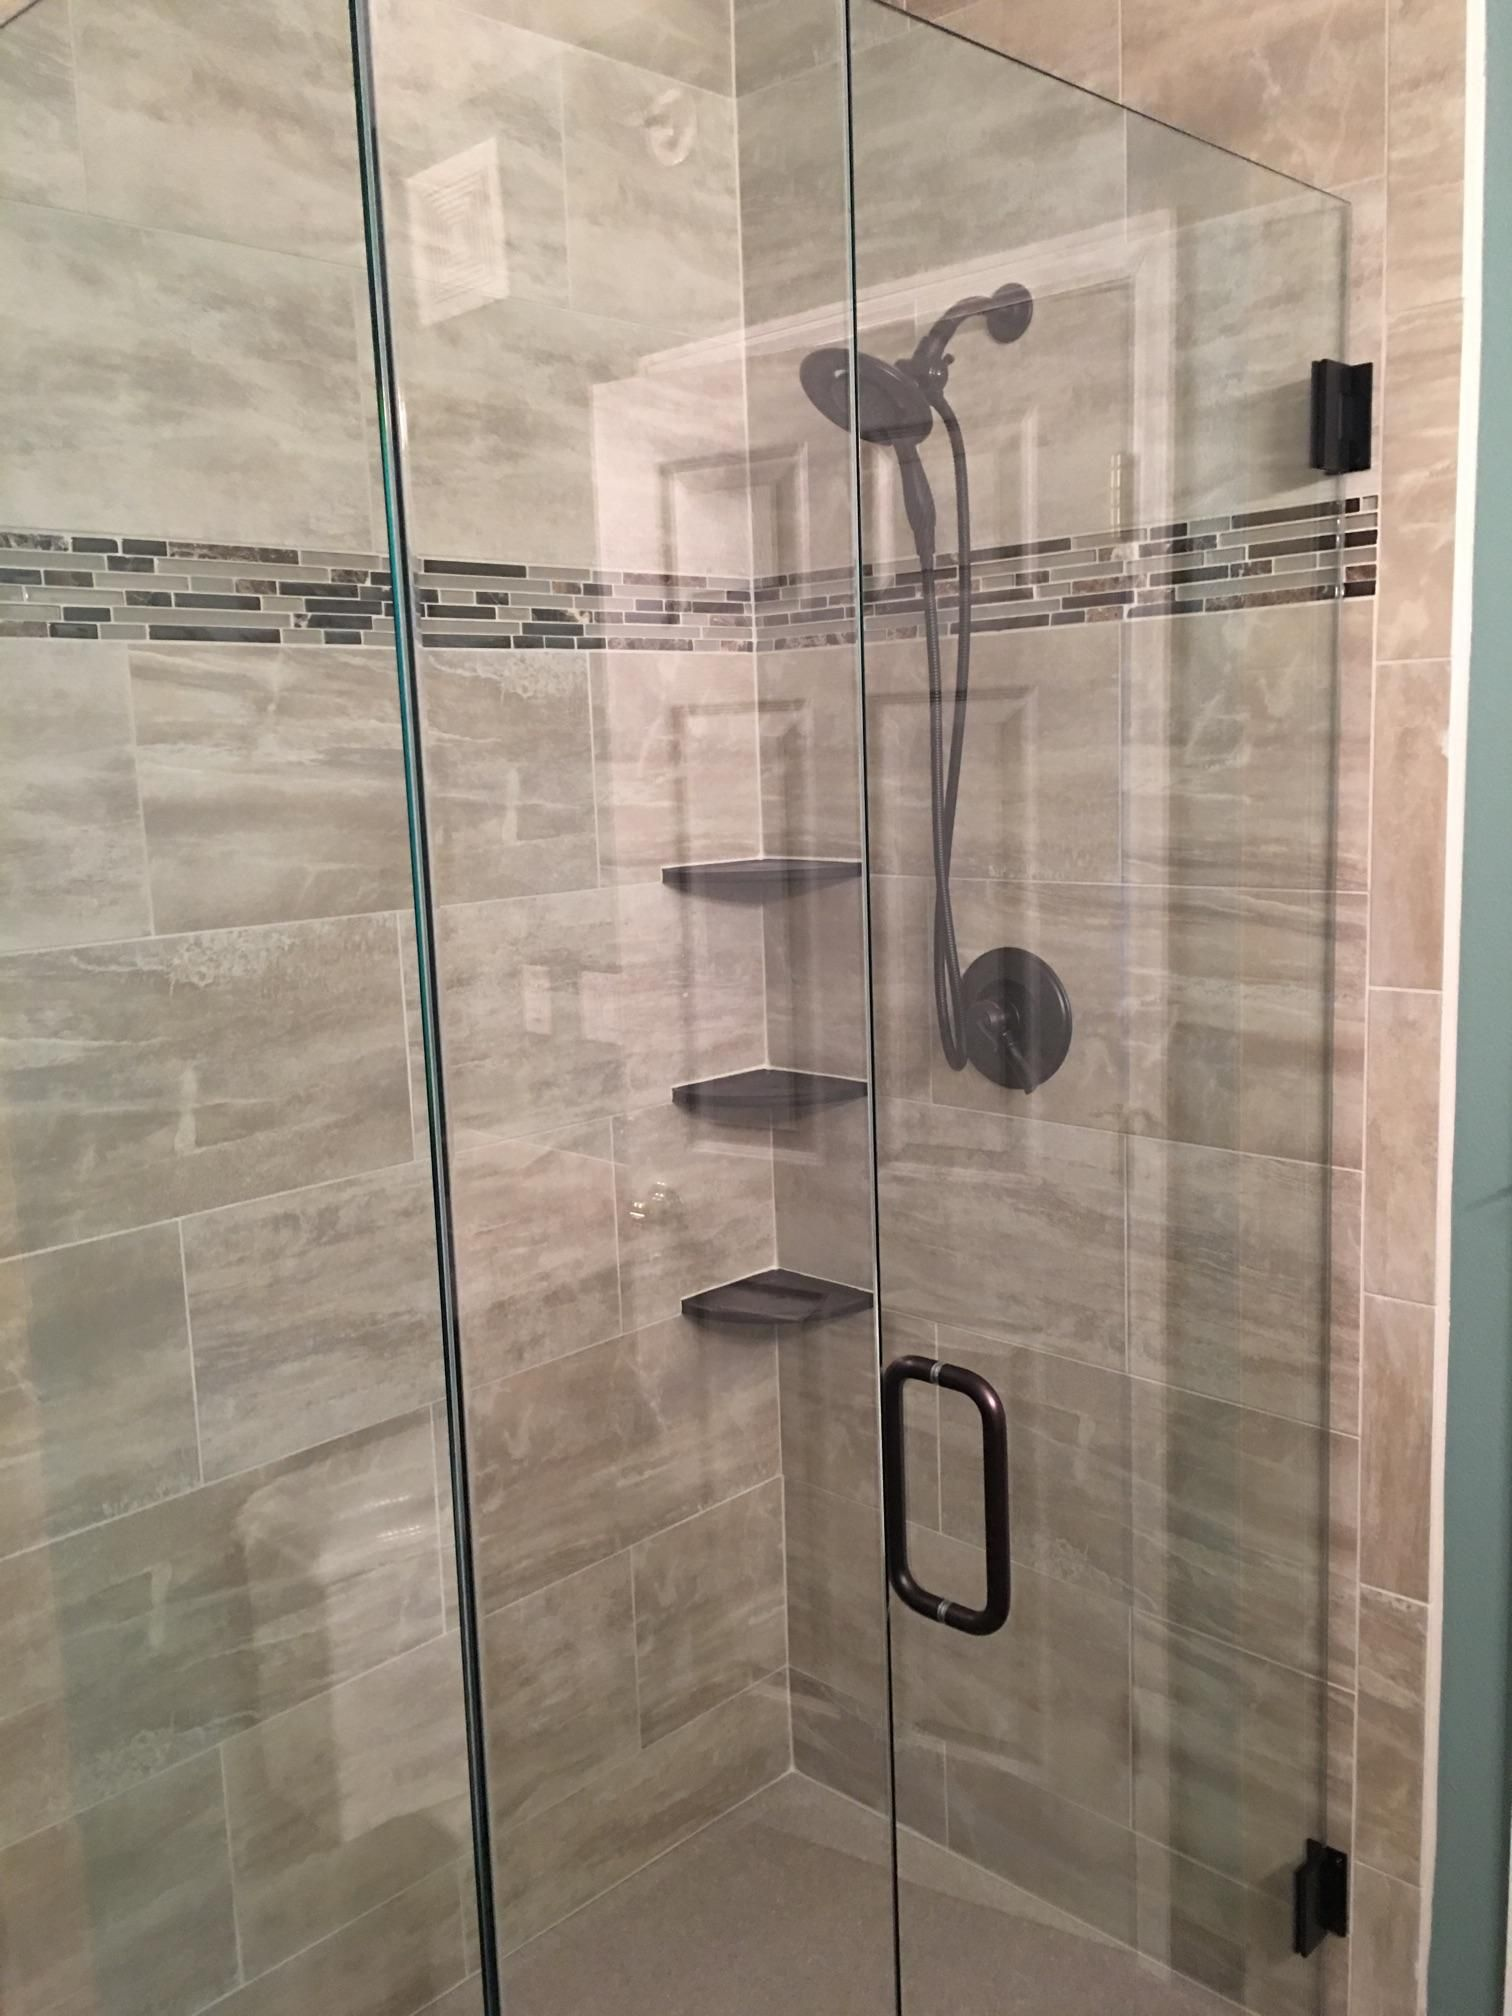 Bathroom Remodel Wet Area Gorgeous Glass Enclosure And Removable Shower Head Bathroom Shower Design Bathroom Design Shower Heads